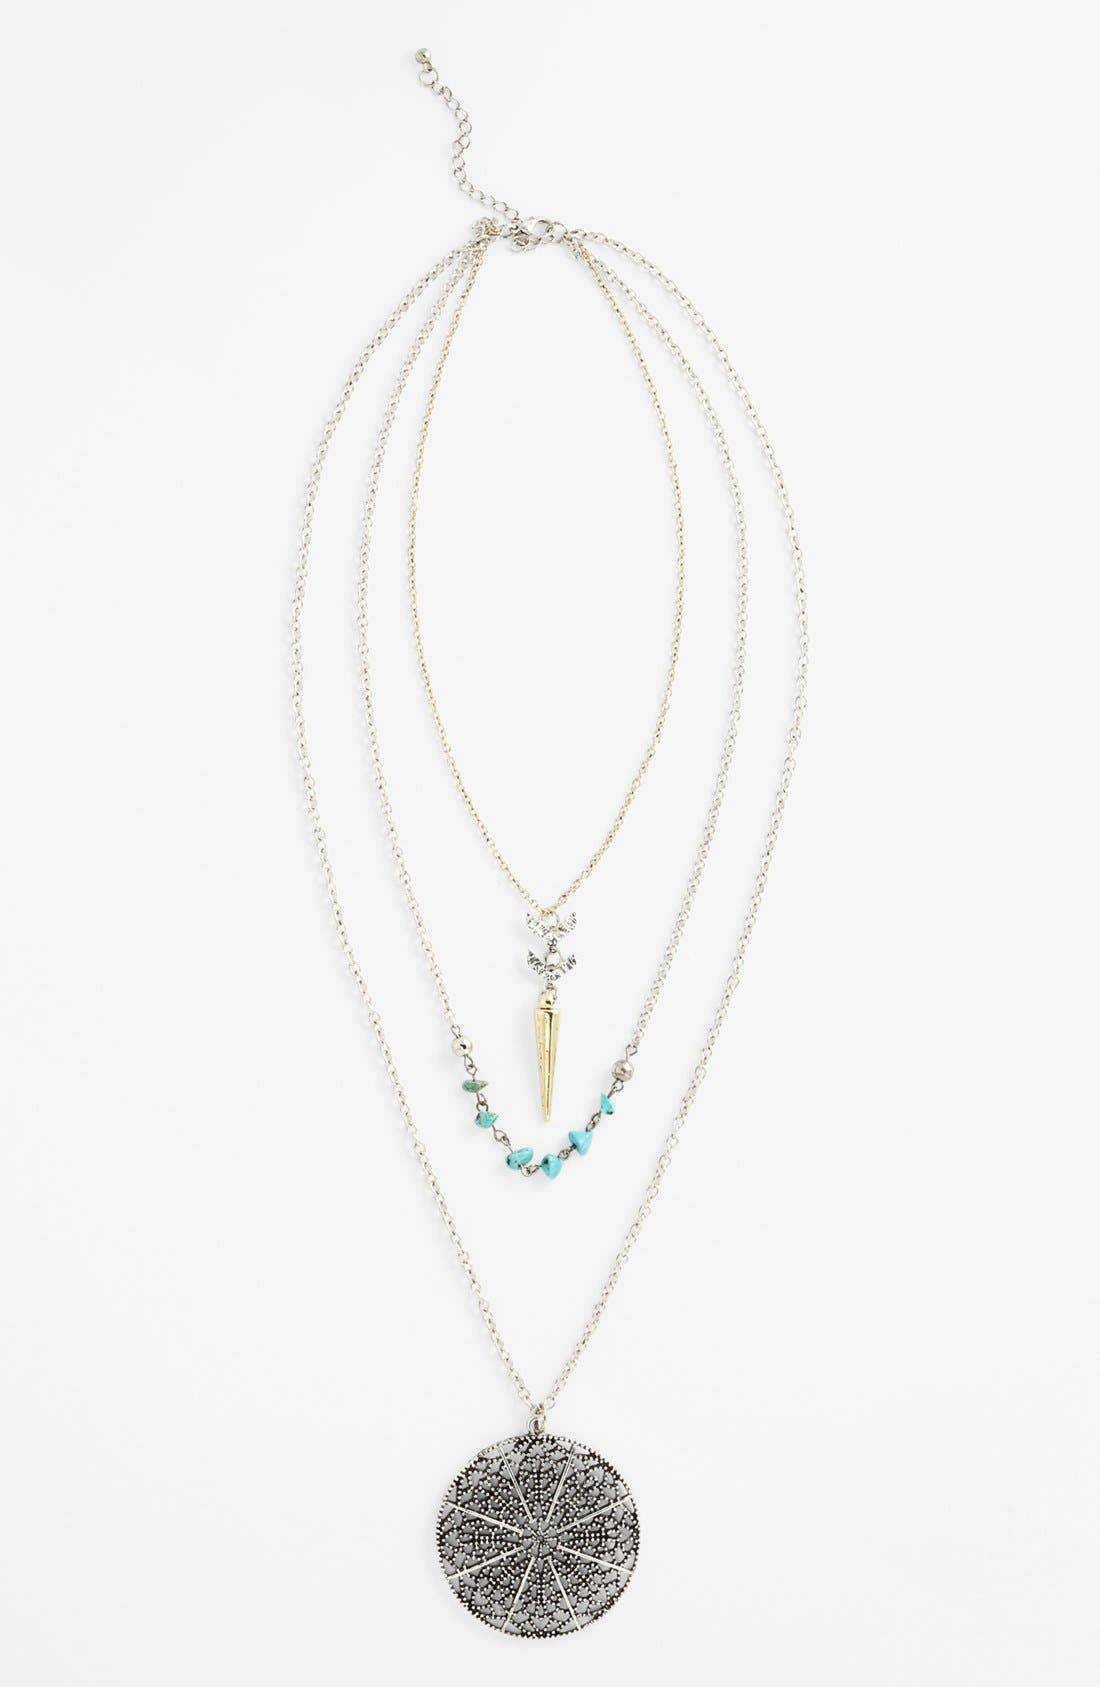 Main Image - Orion Triple Strand Necklace